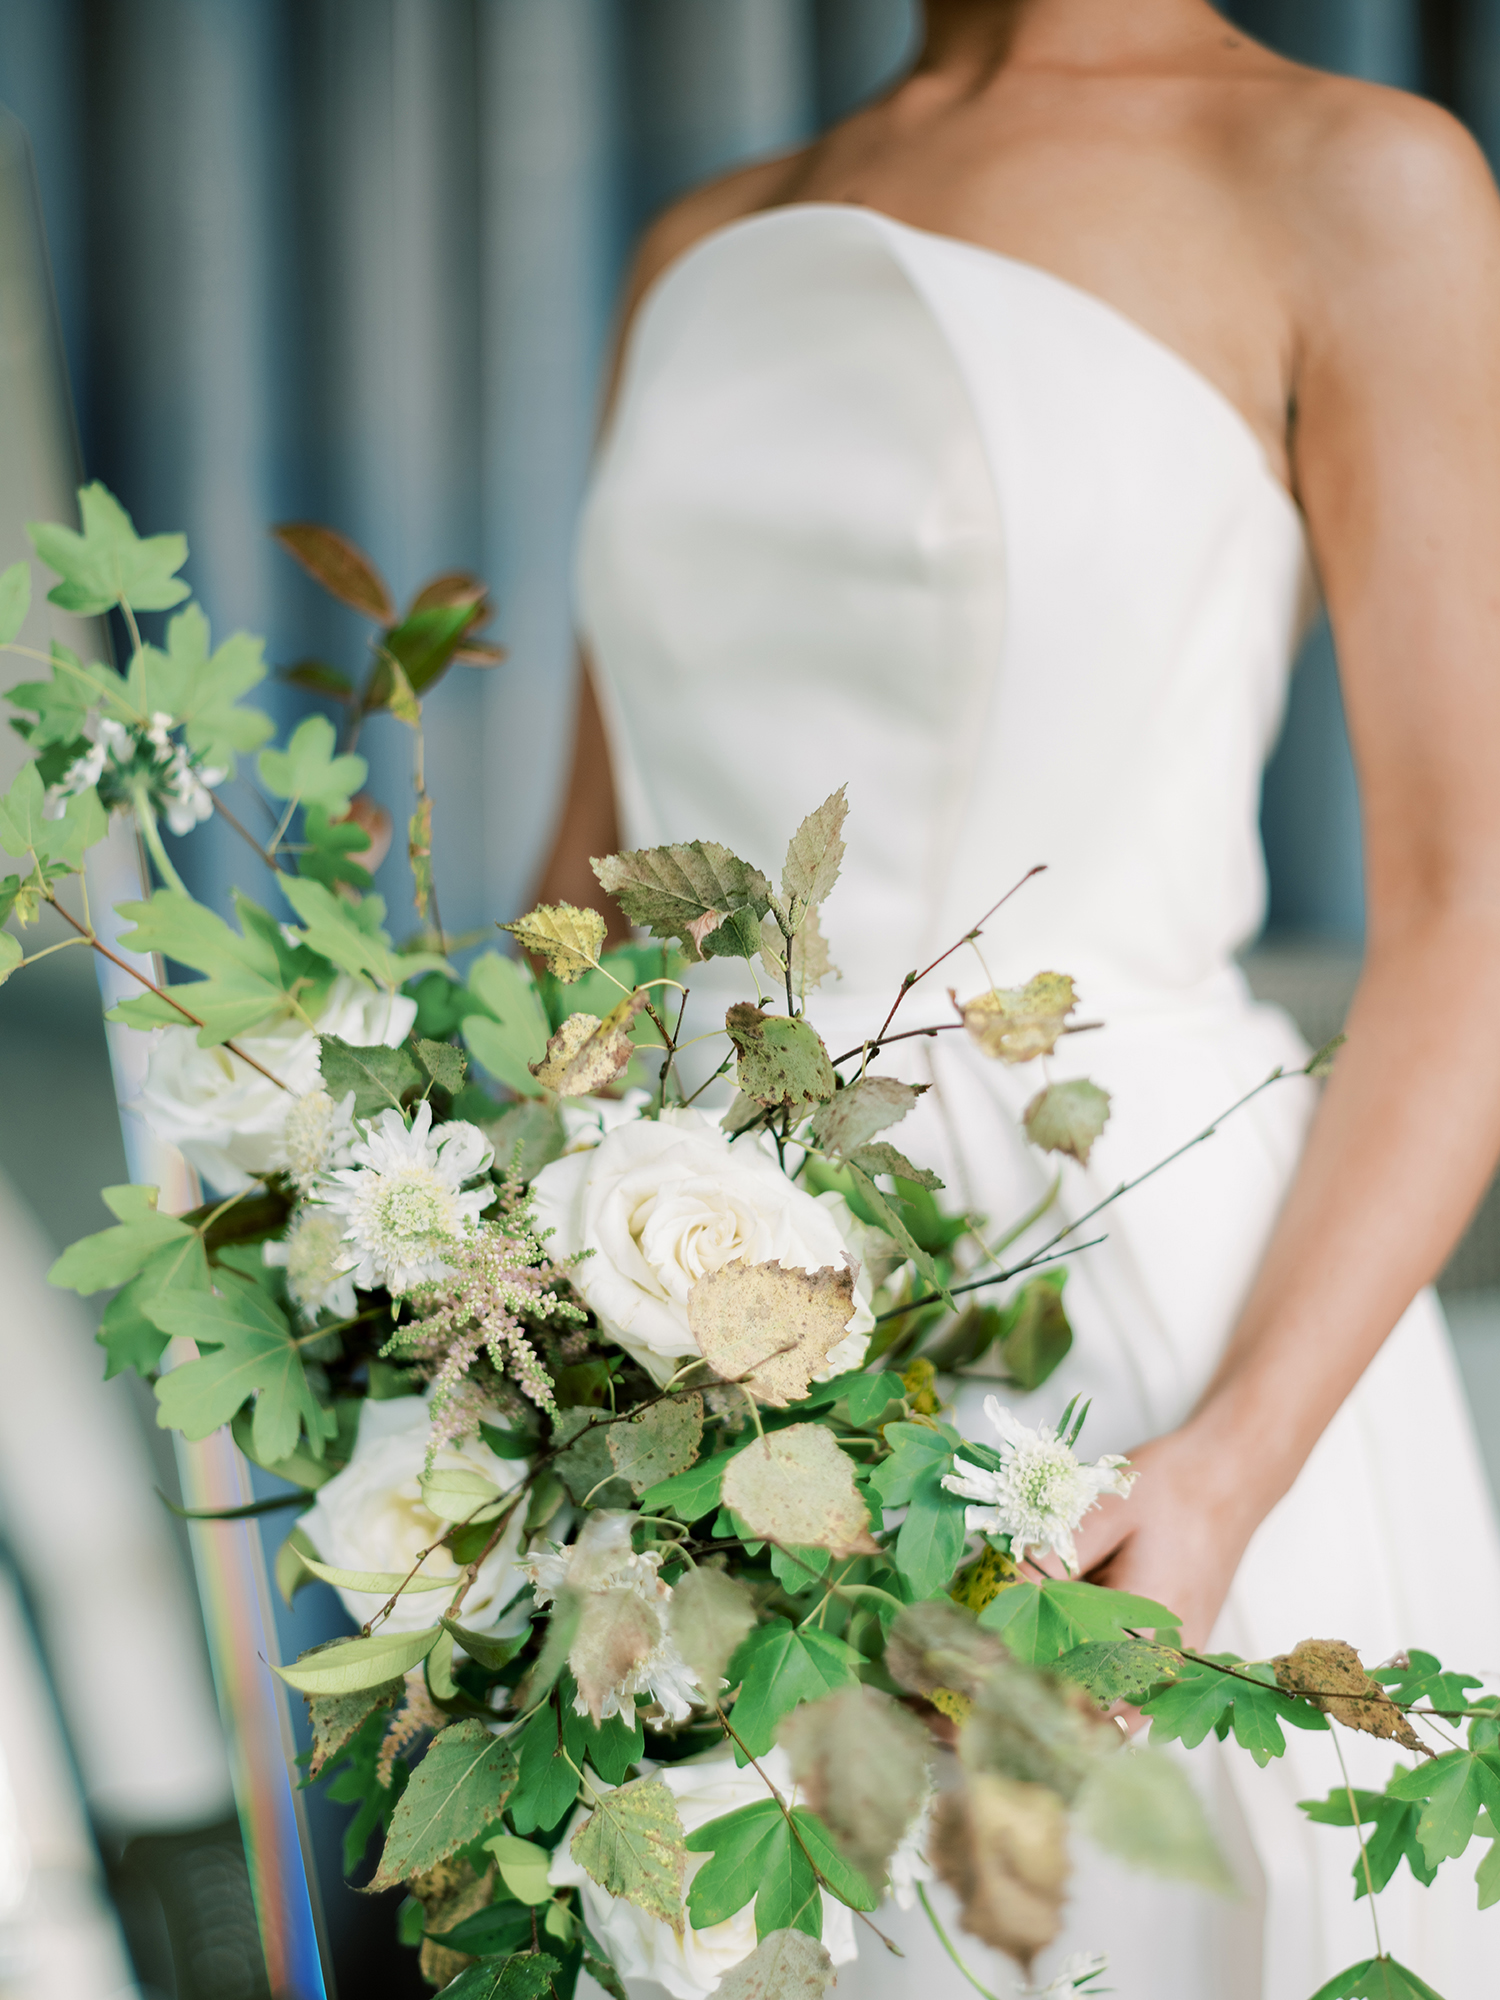 Bridal bouquet inspiration at Something Blue workshop, creative direction and styling by Brancoprata